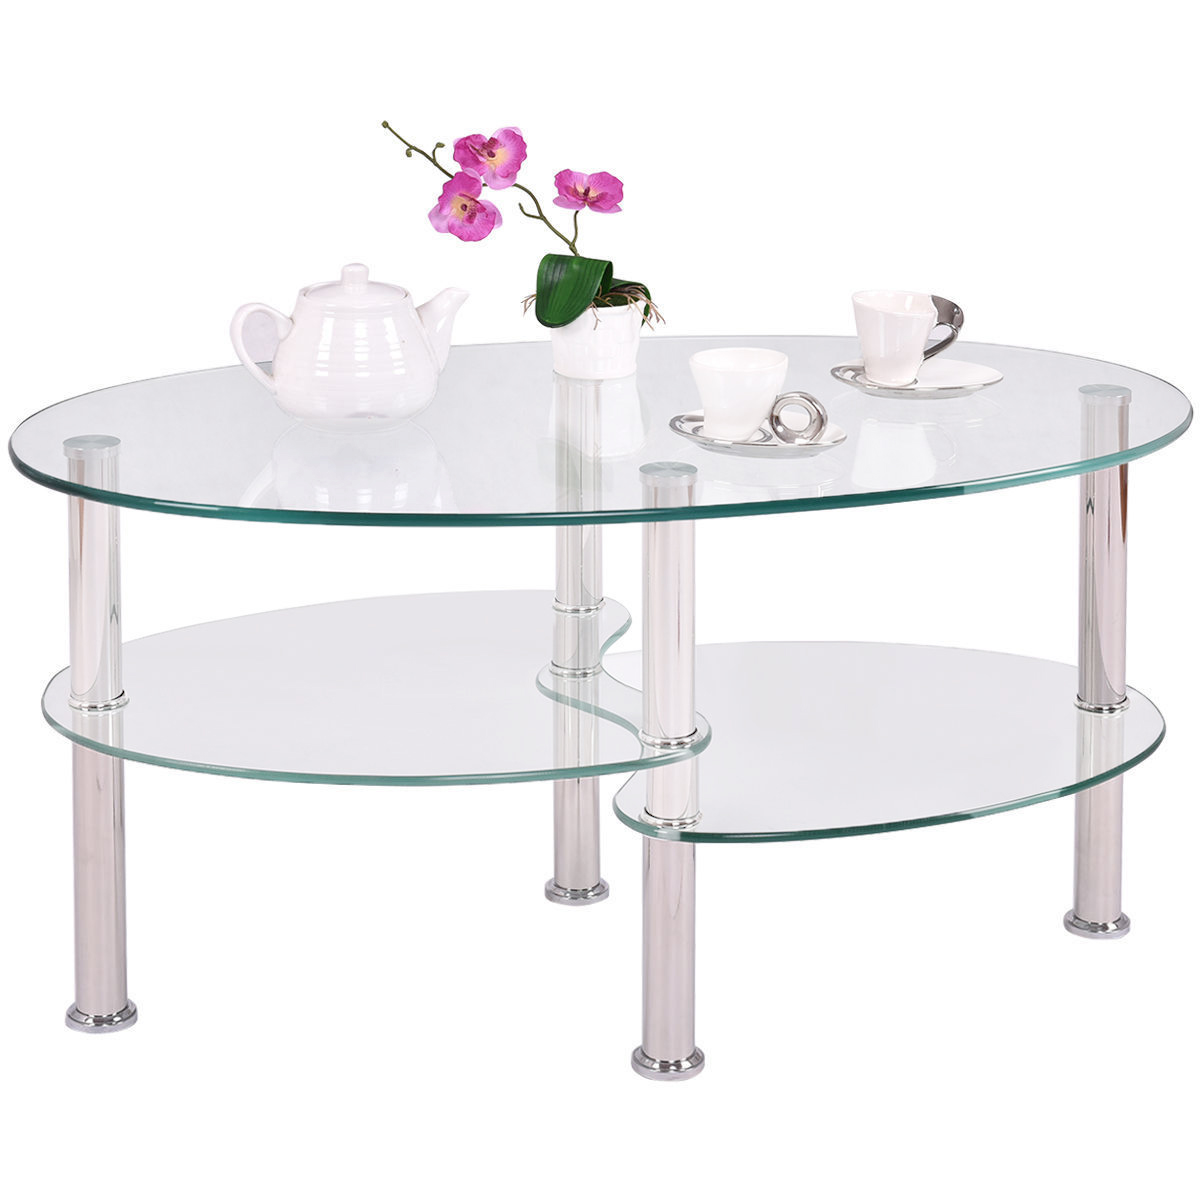 Ktaxon 3-Tier Tempered Glass Shelf Oval Side Coffee Table End Table Living Room NEW